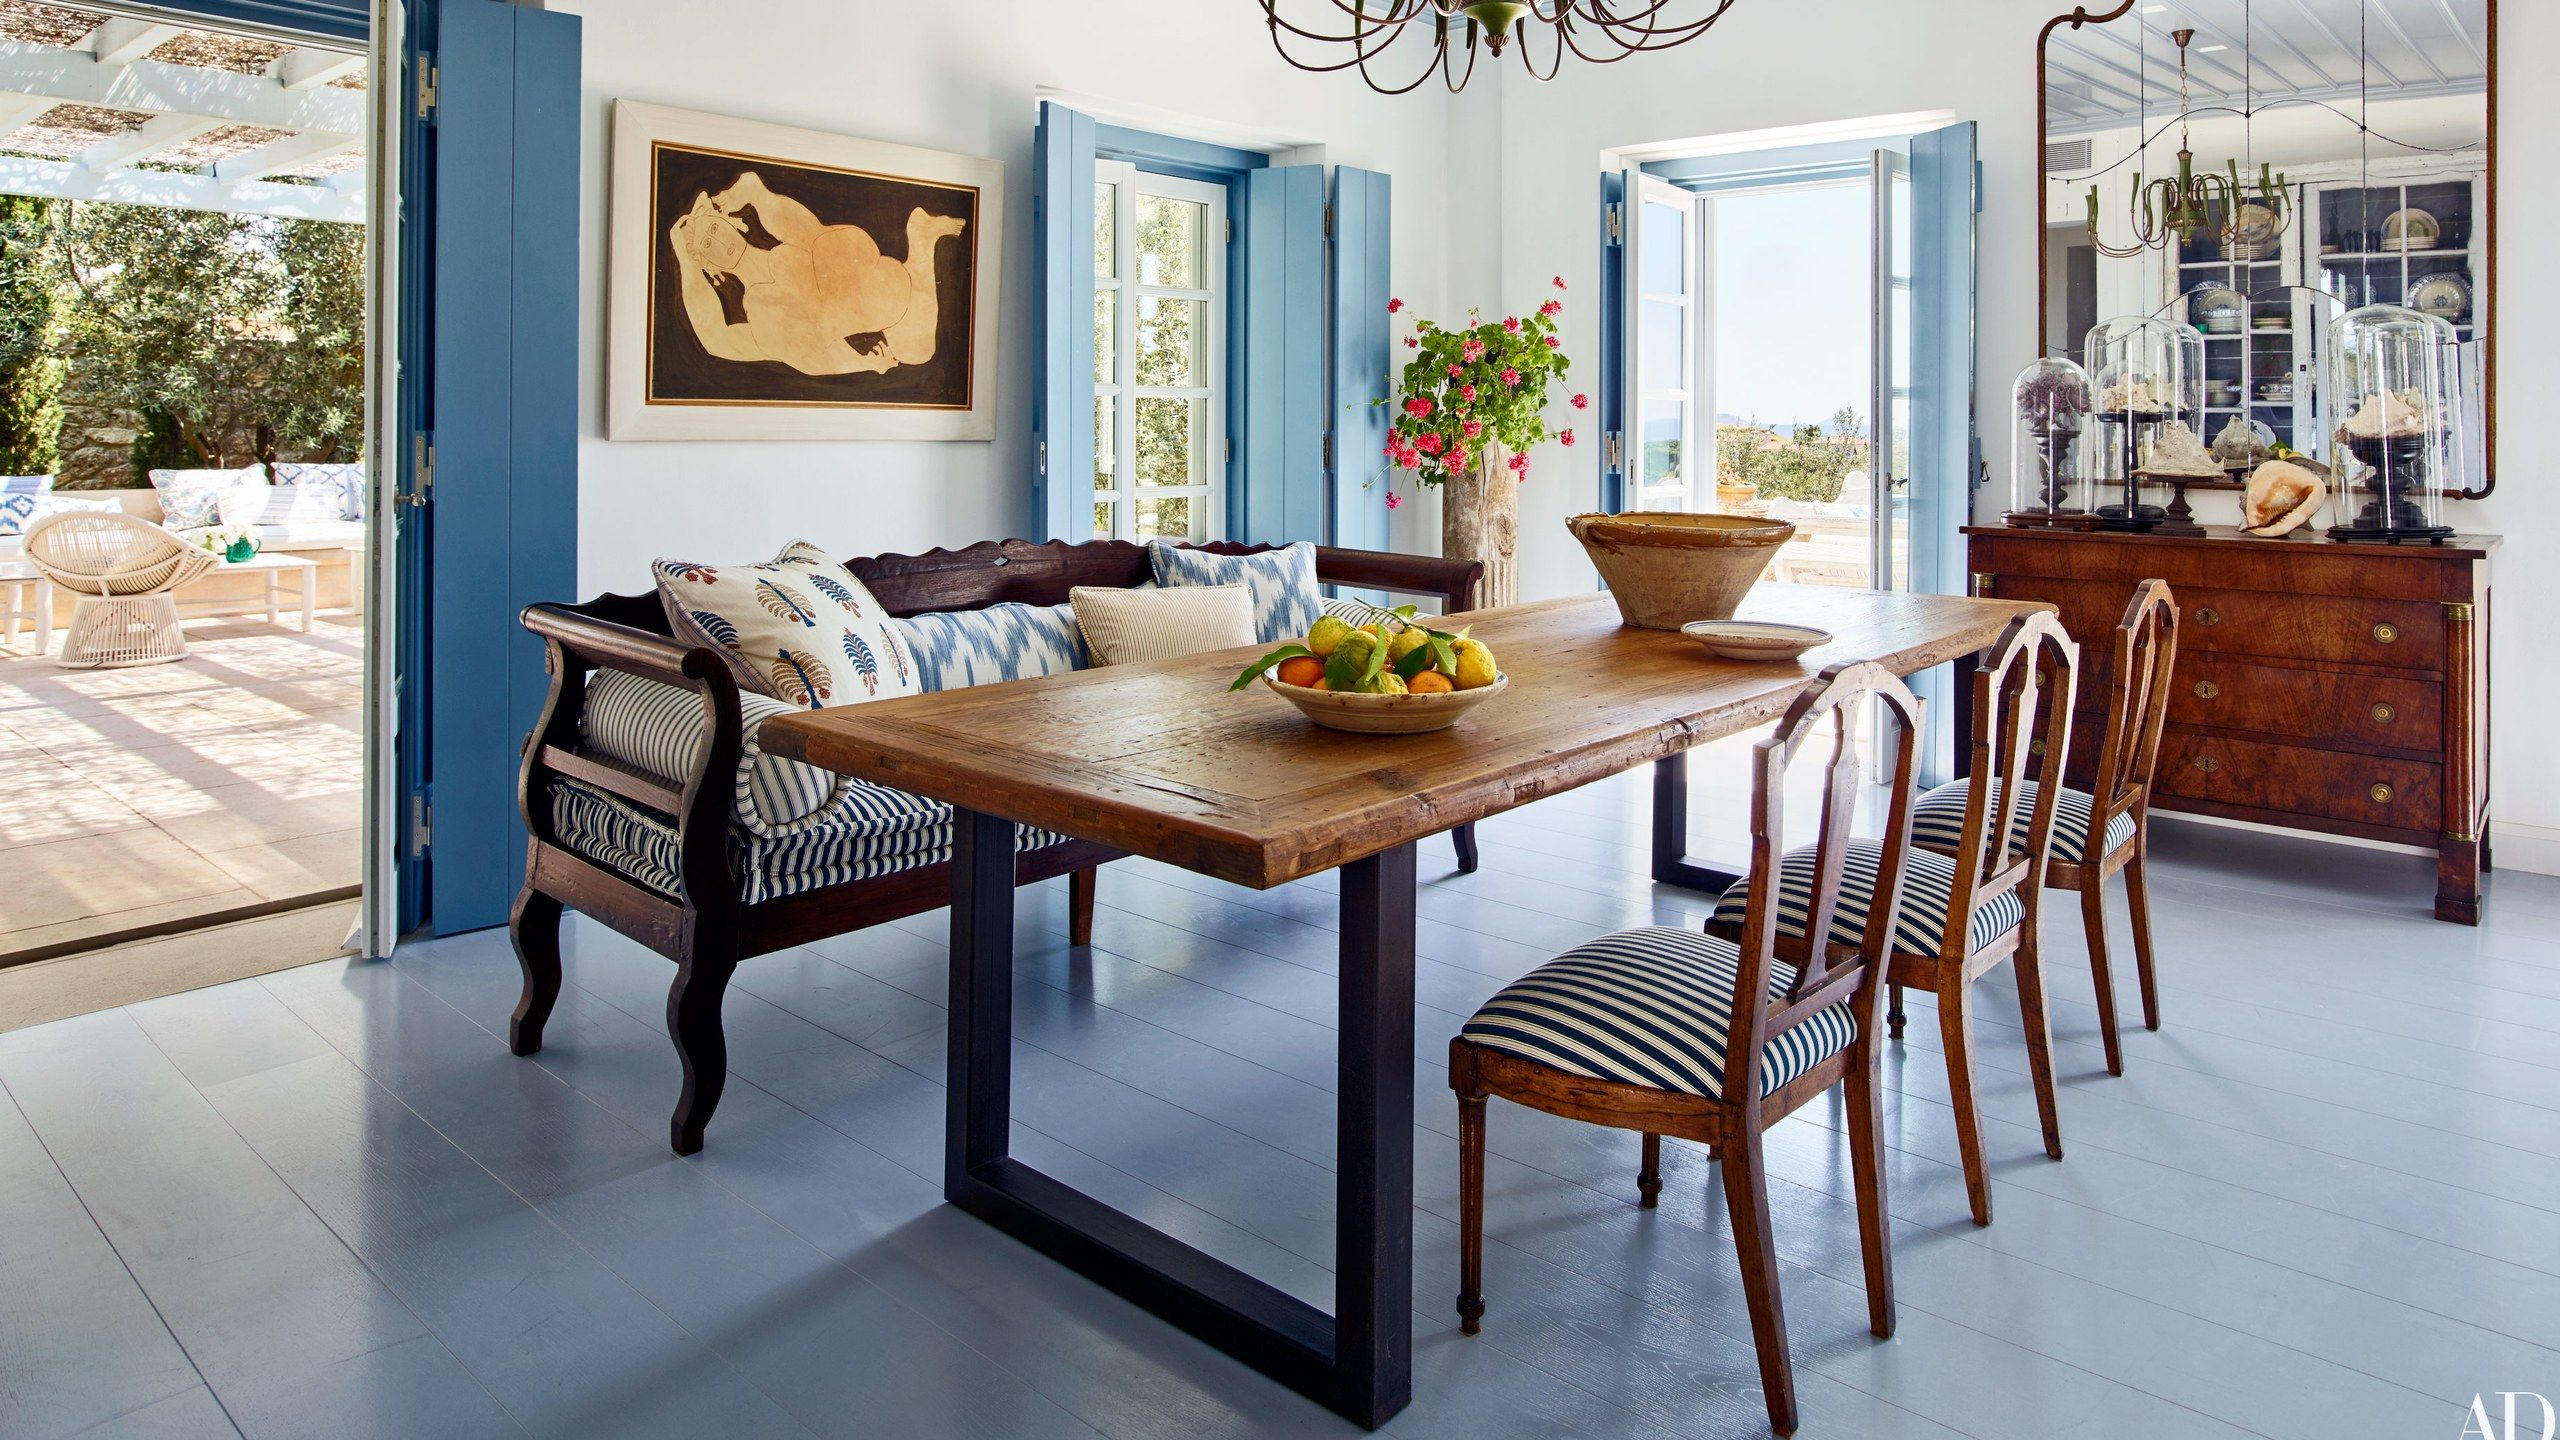 6 Reliably Chic Ways To Mix And Match Dining Room Chairs Farmhouse Dining Room Dining Room Colors Dining Room Chairs